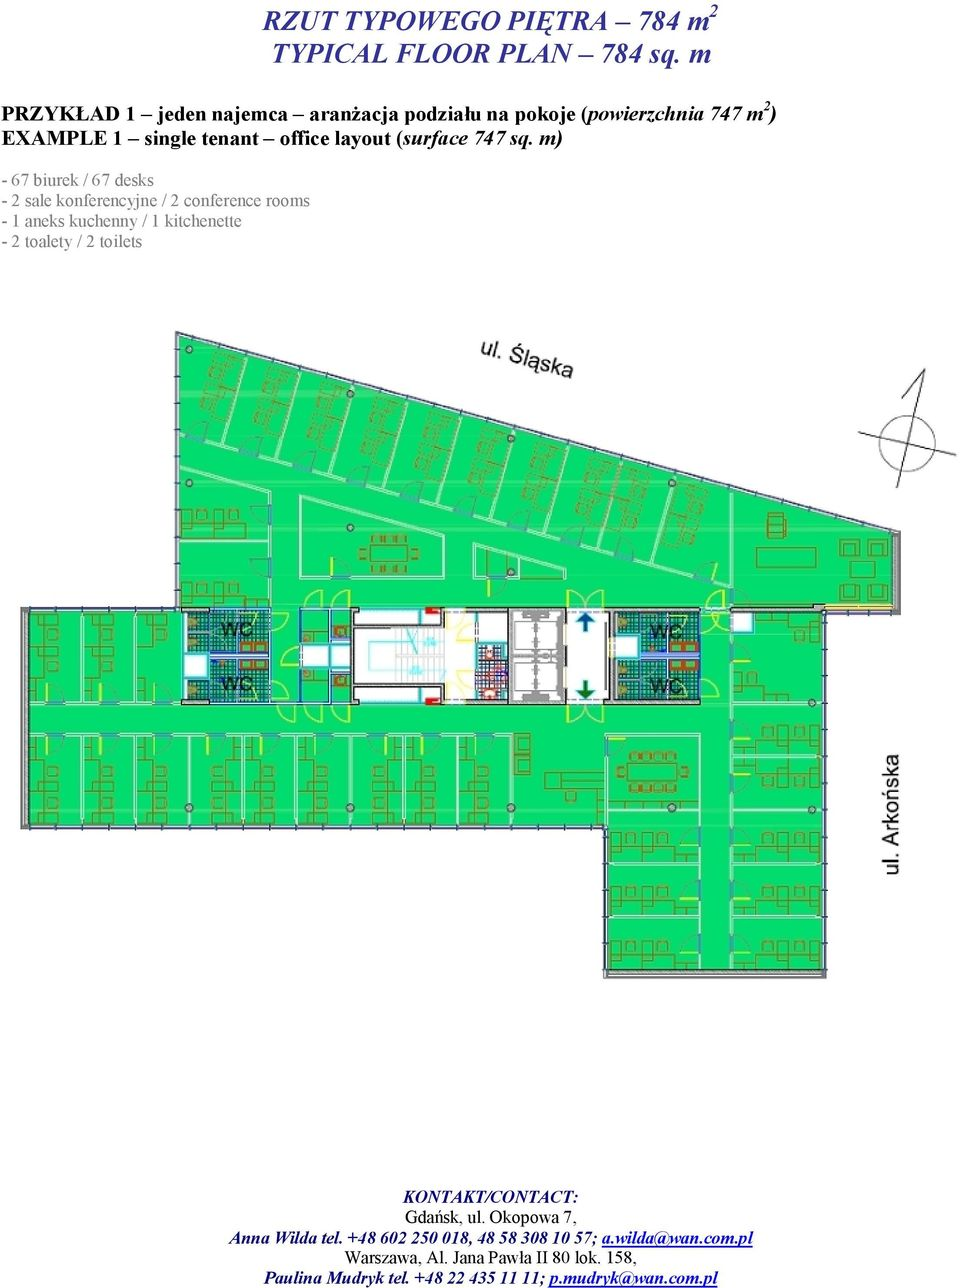 m 2 ) EXAMPLE 1 single tenant office layout (surface 747 sq.